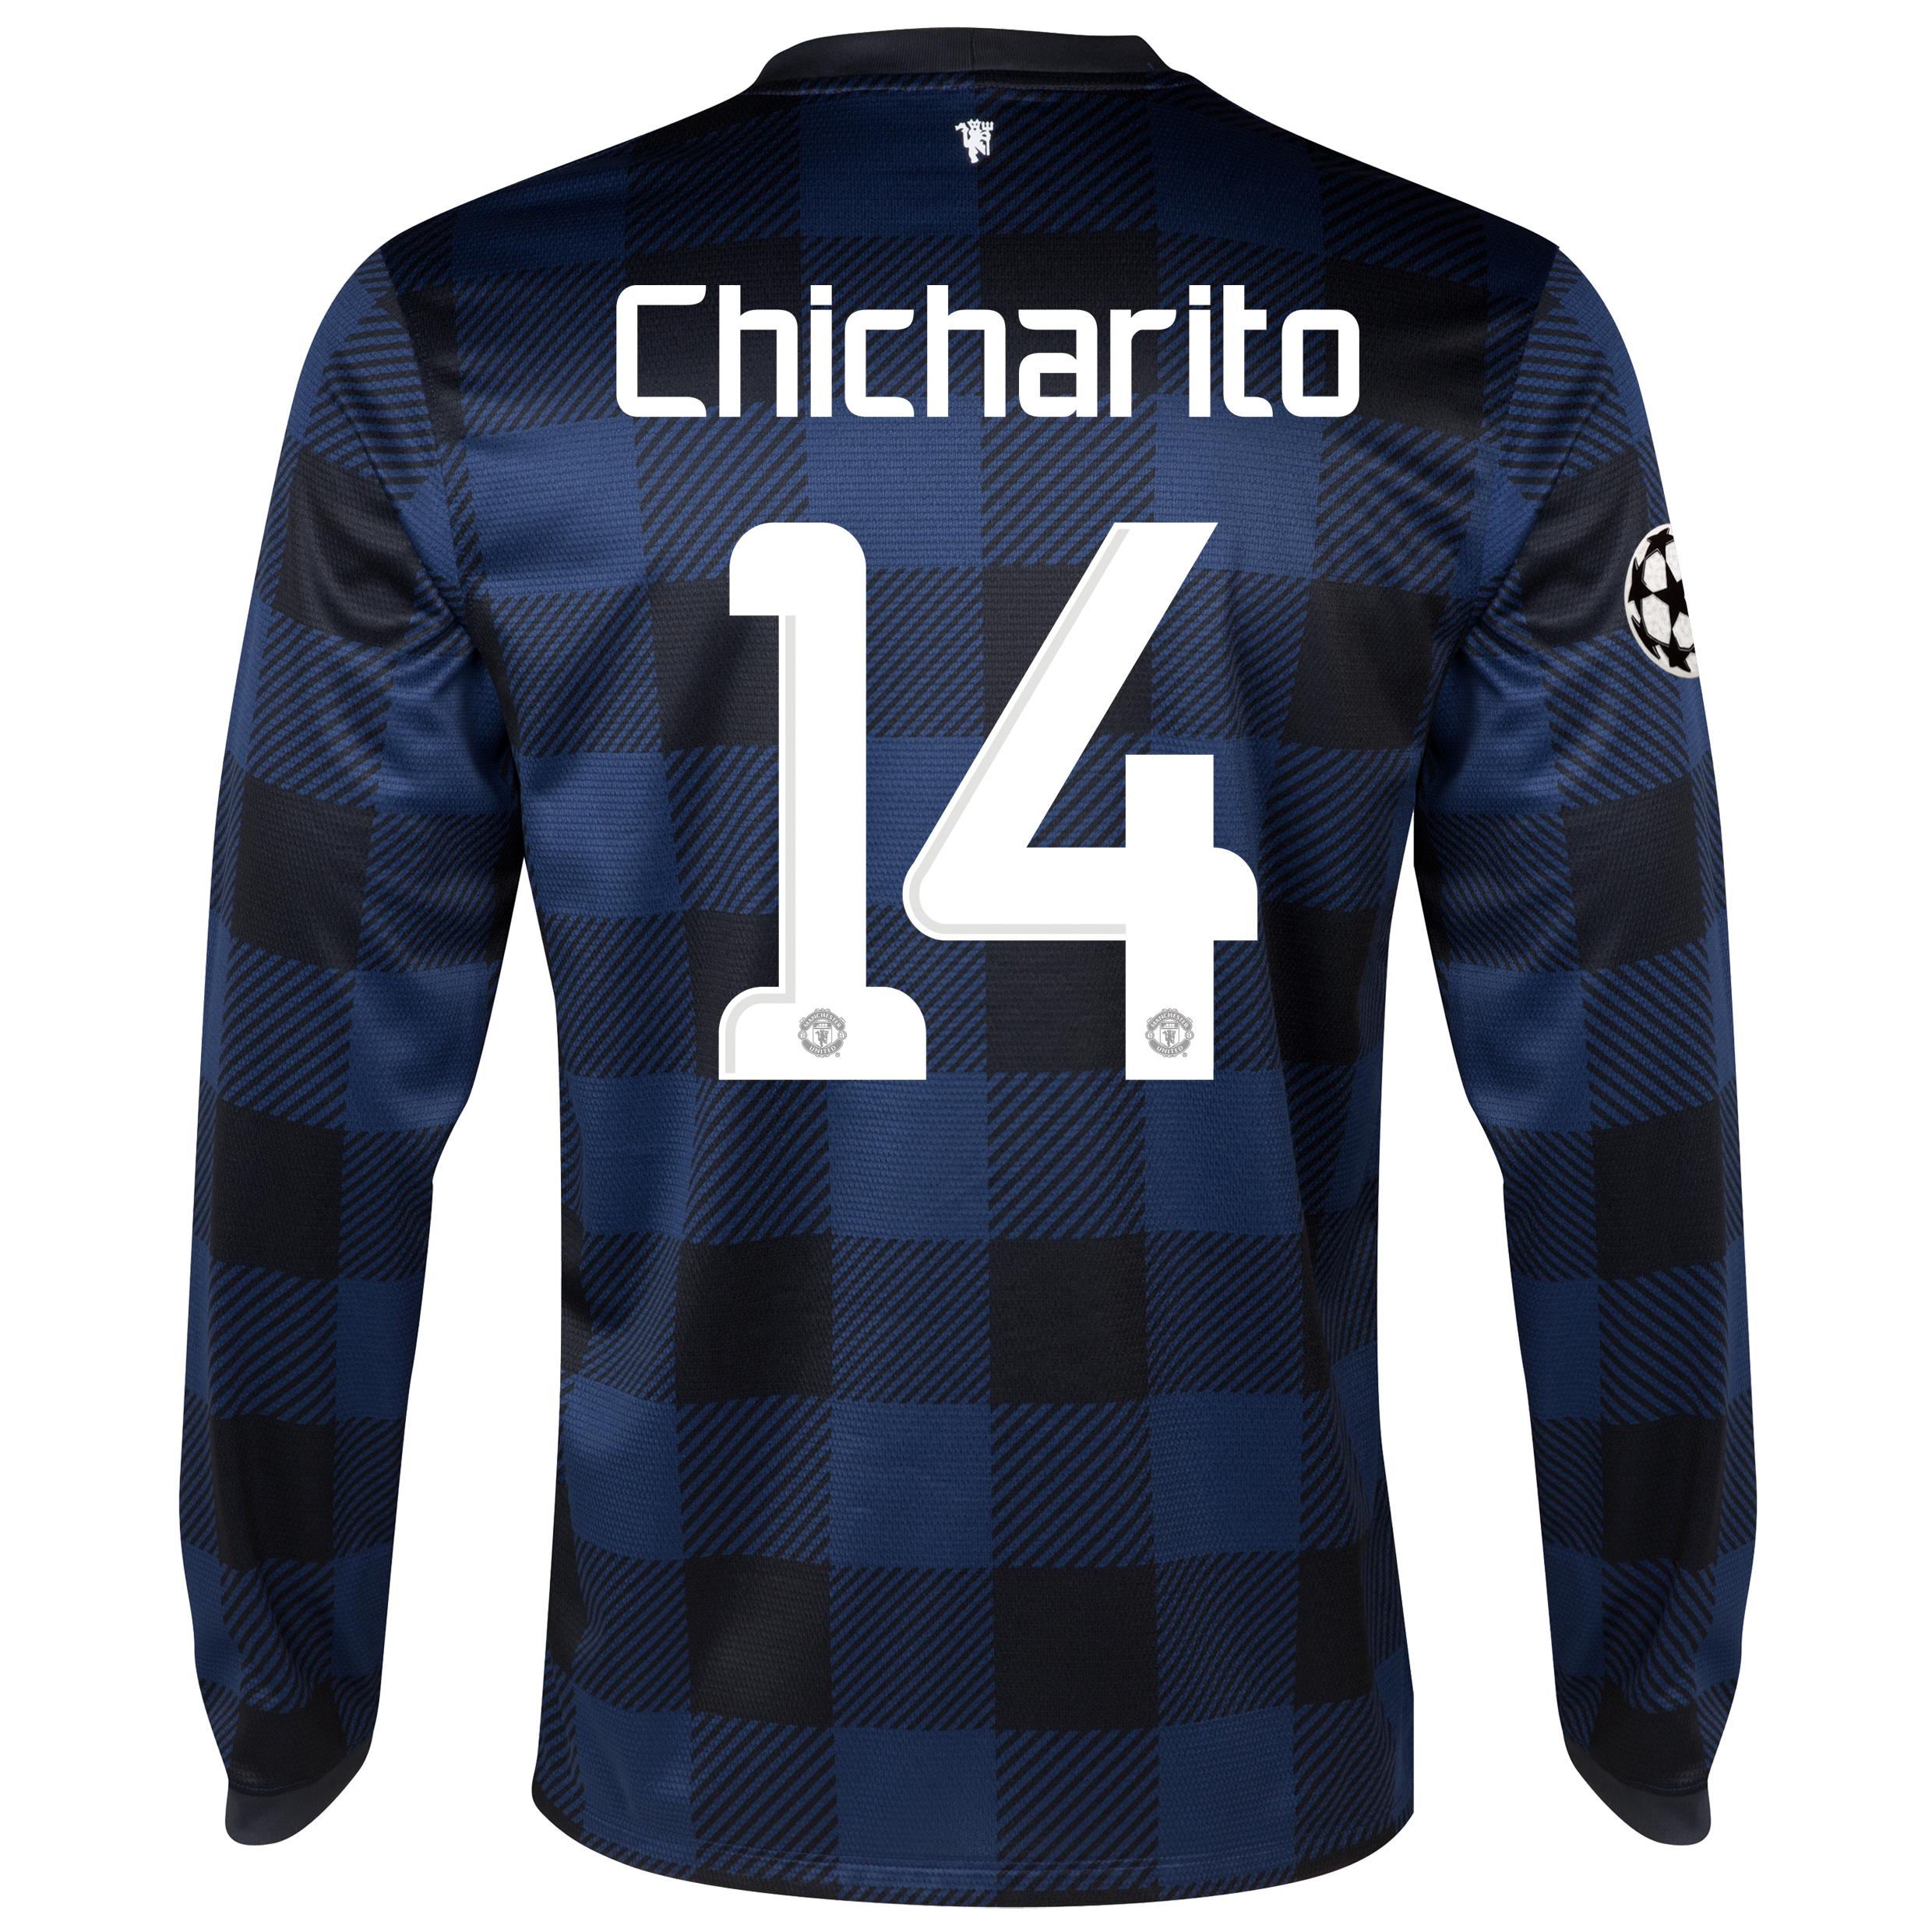 Manchester United UEFA Champions League Away Shirt 2013/14 - Long Sleeved with Chicharito 14 printing